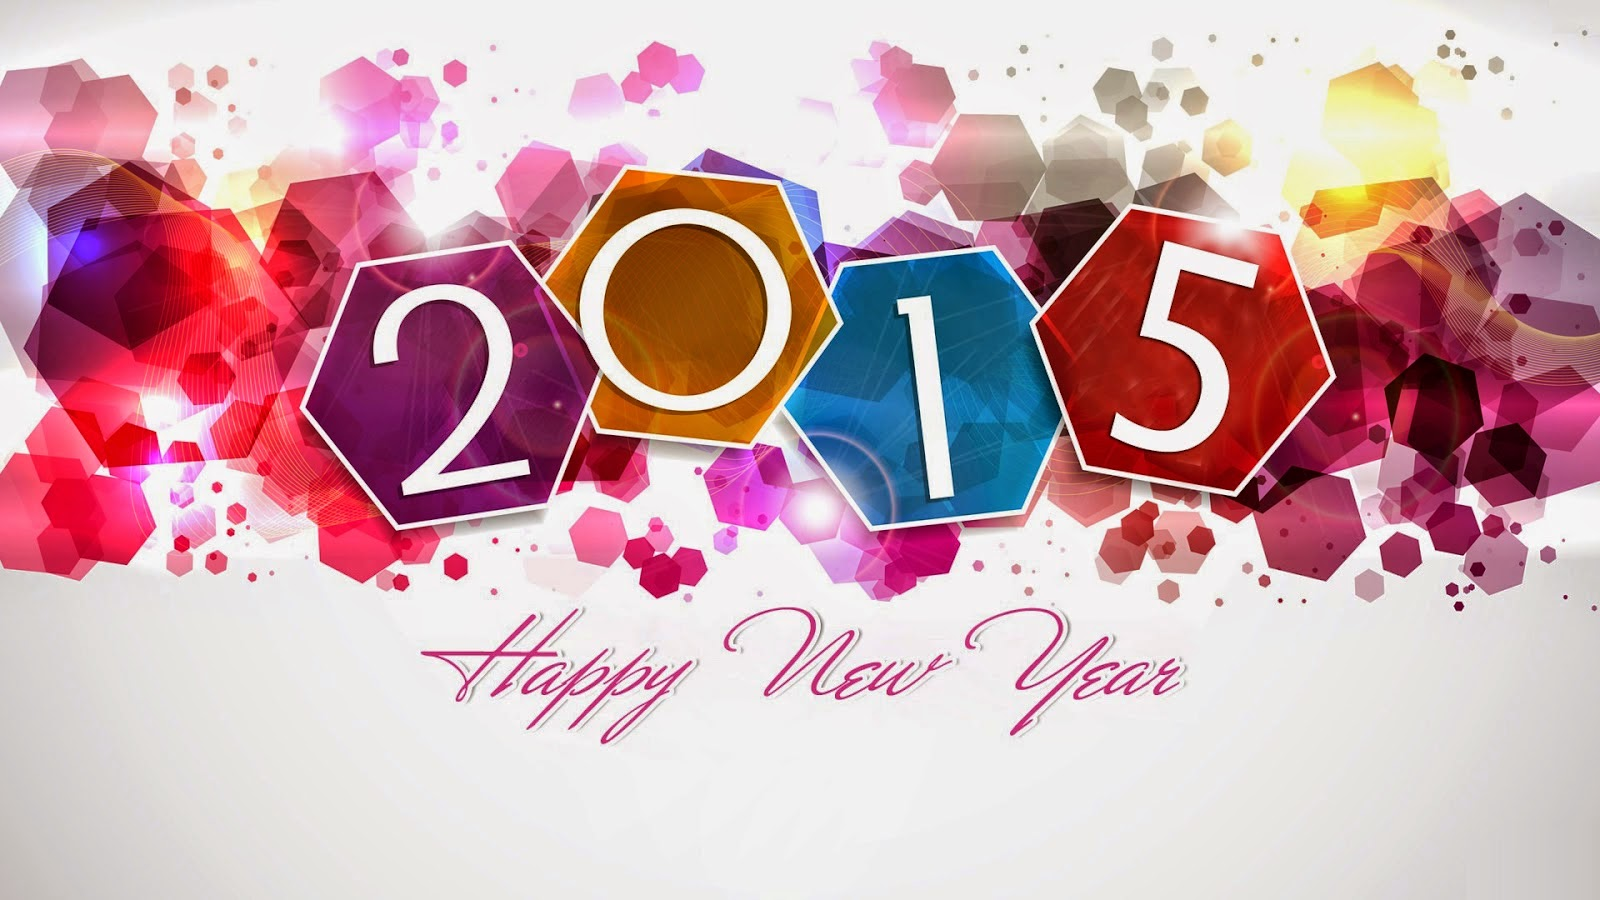 Advance Happy New Year 2015 - Best Wishing Cards